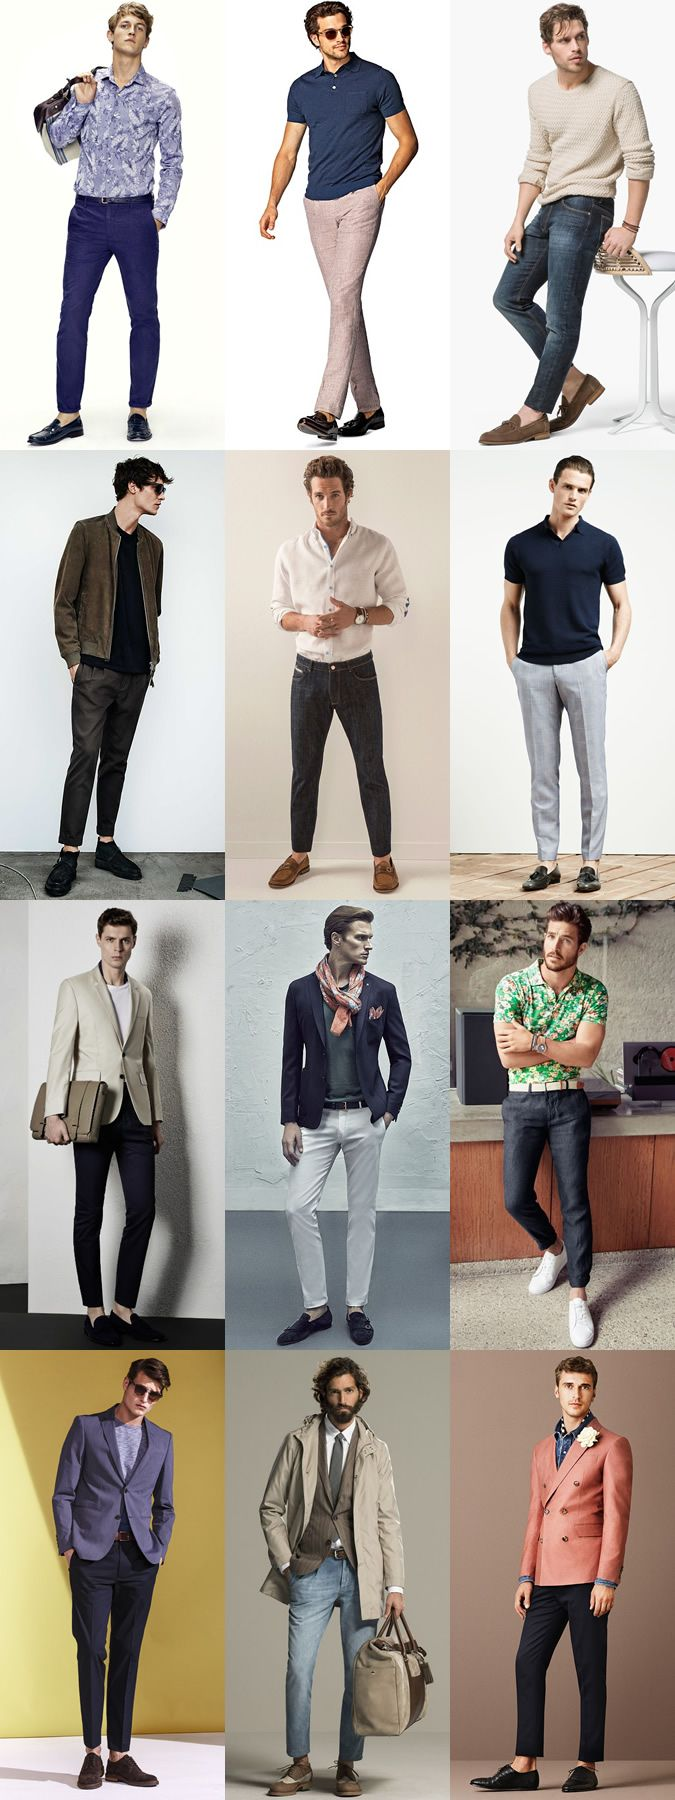 Rules Sockless Going Male 5 For ByМужские Позы 0PkOnw8